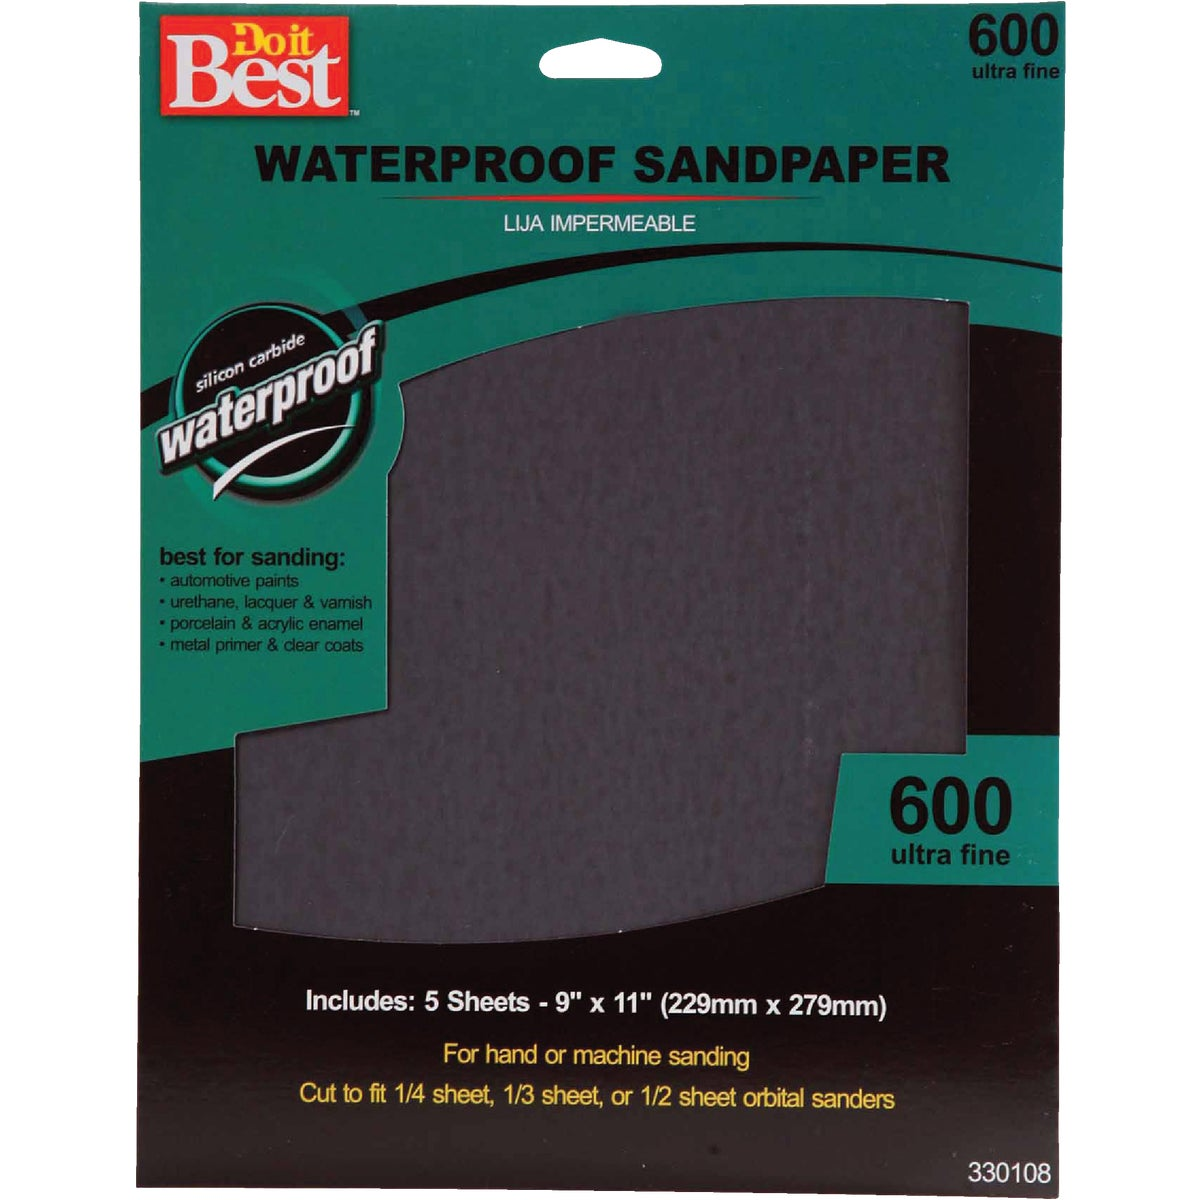 5PK UFINE WET SANDPAPER - 330108 by Ali Industries Inc